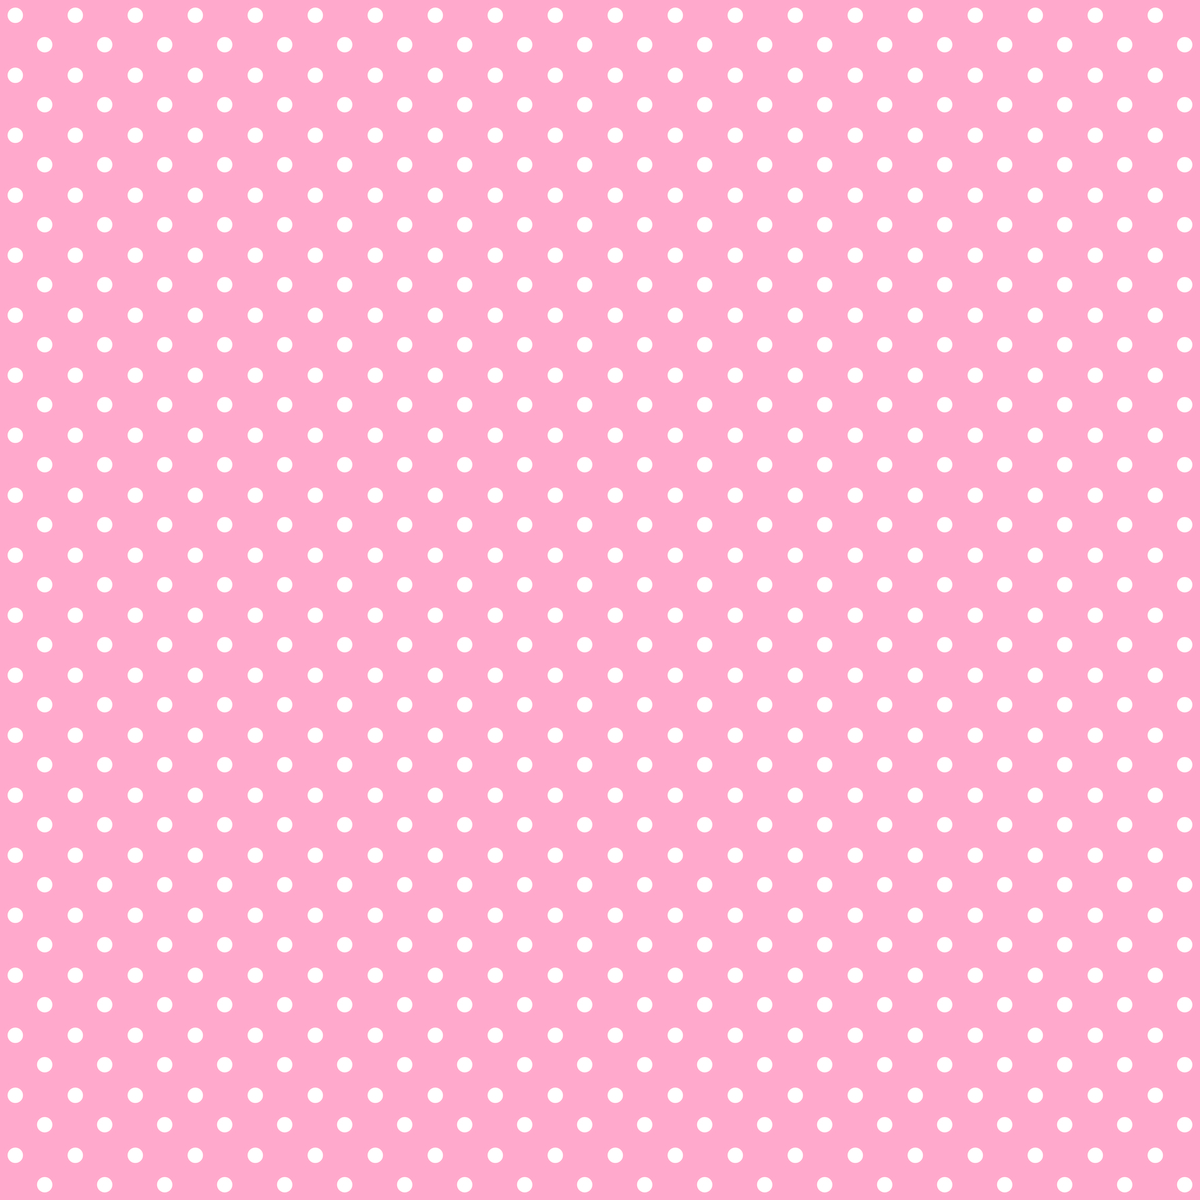 Free Printable Planner Stickers And Scrapbooking Papers   Digital - Free Printable Pink Polka Dot Paper